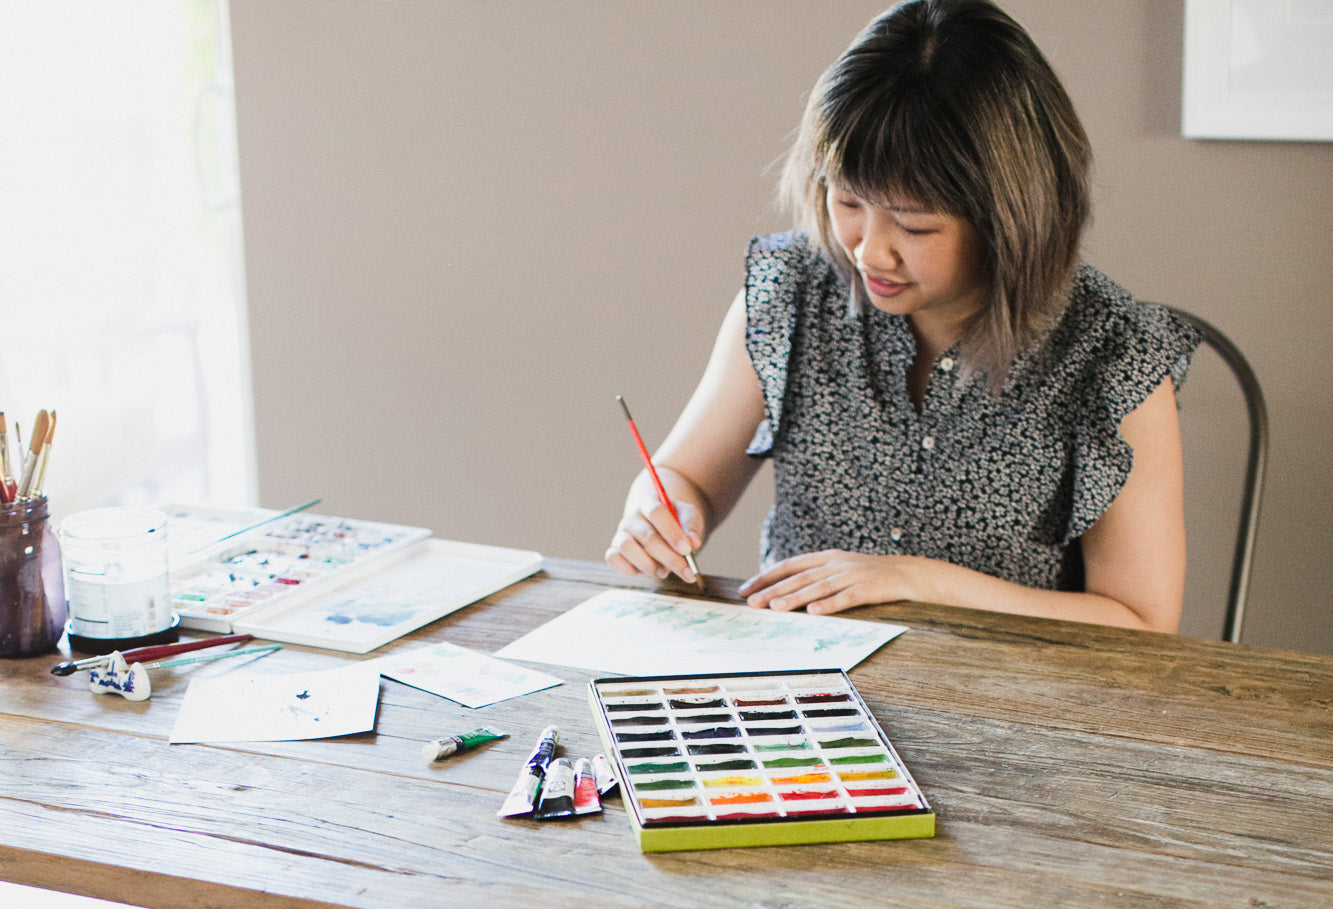 Cathy Zhang - Business Resources for Artists